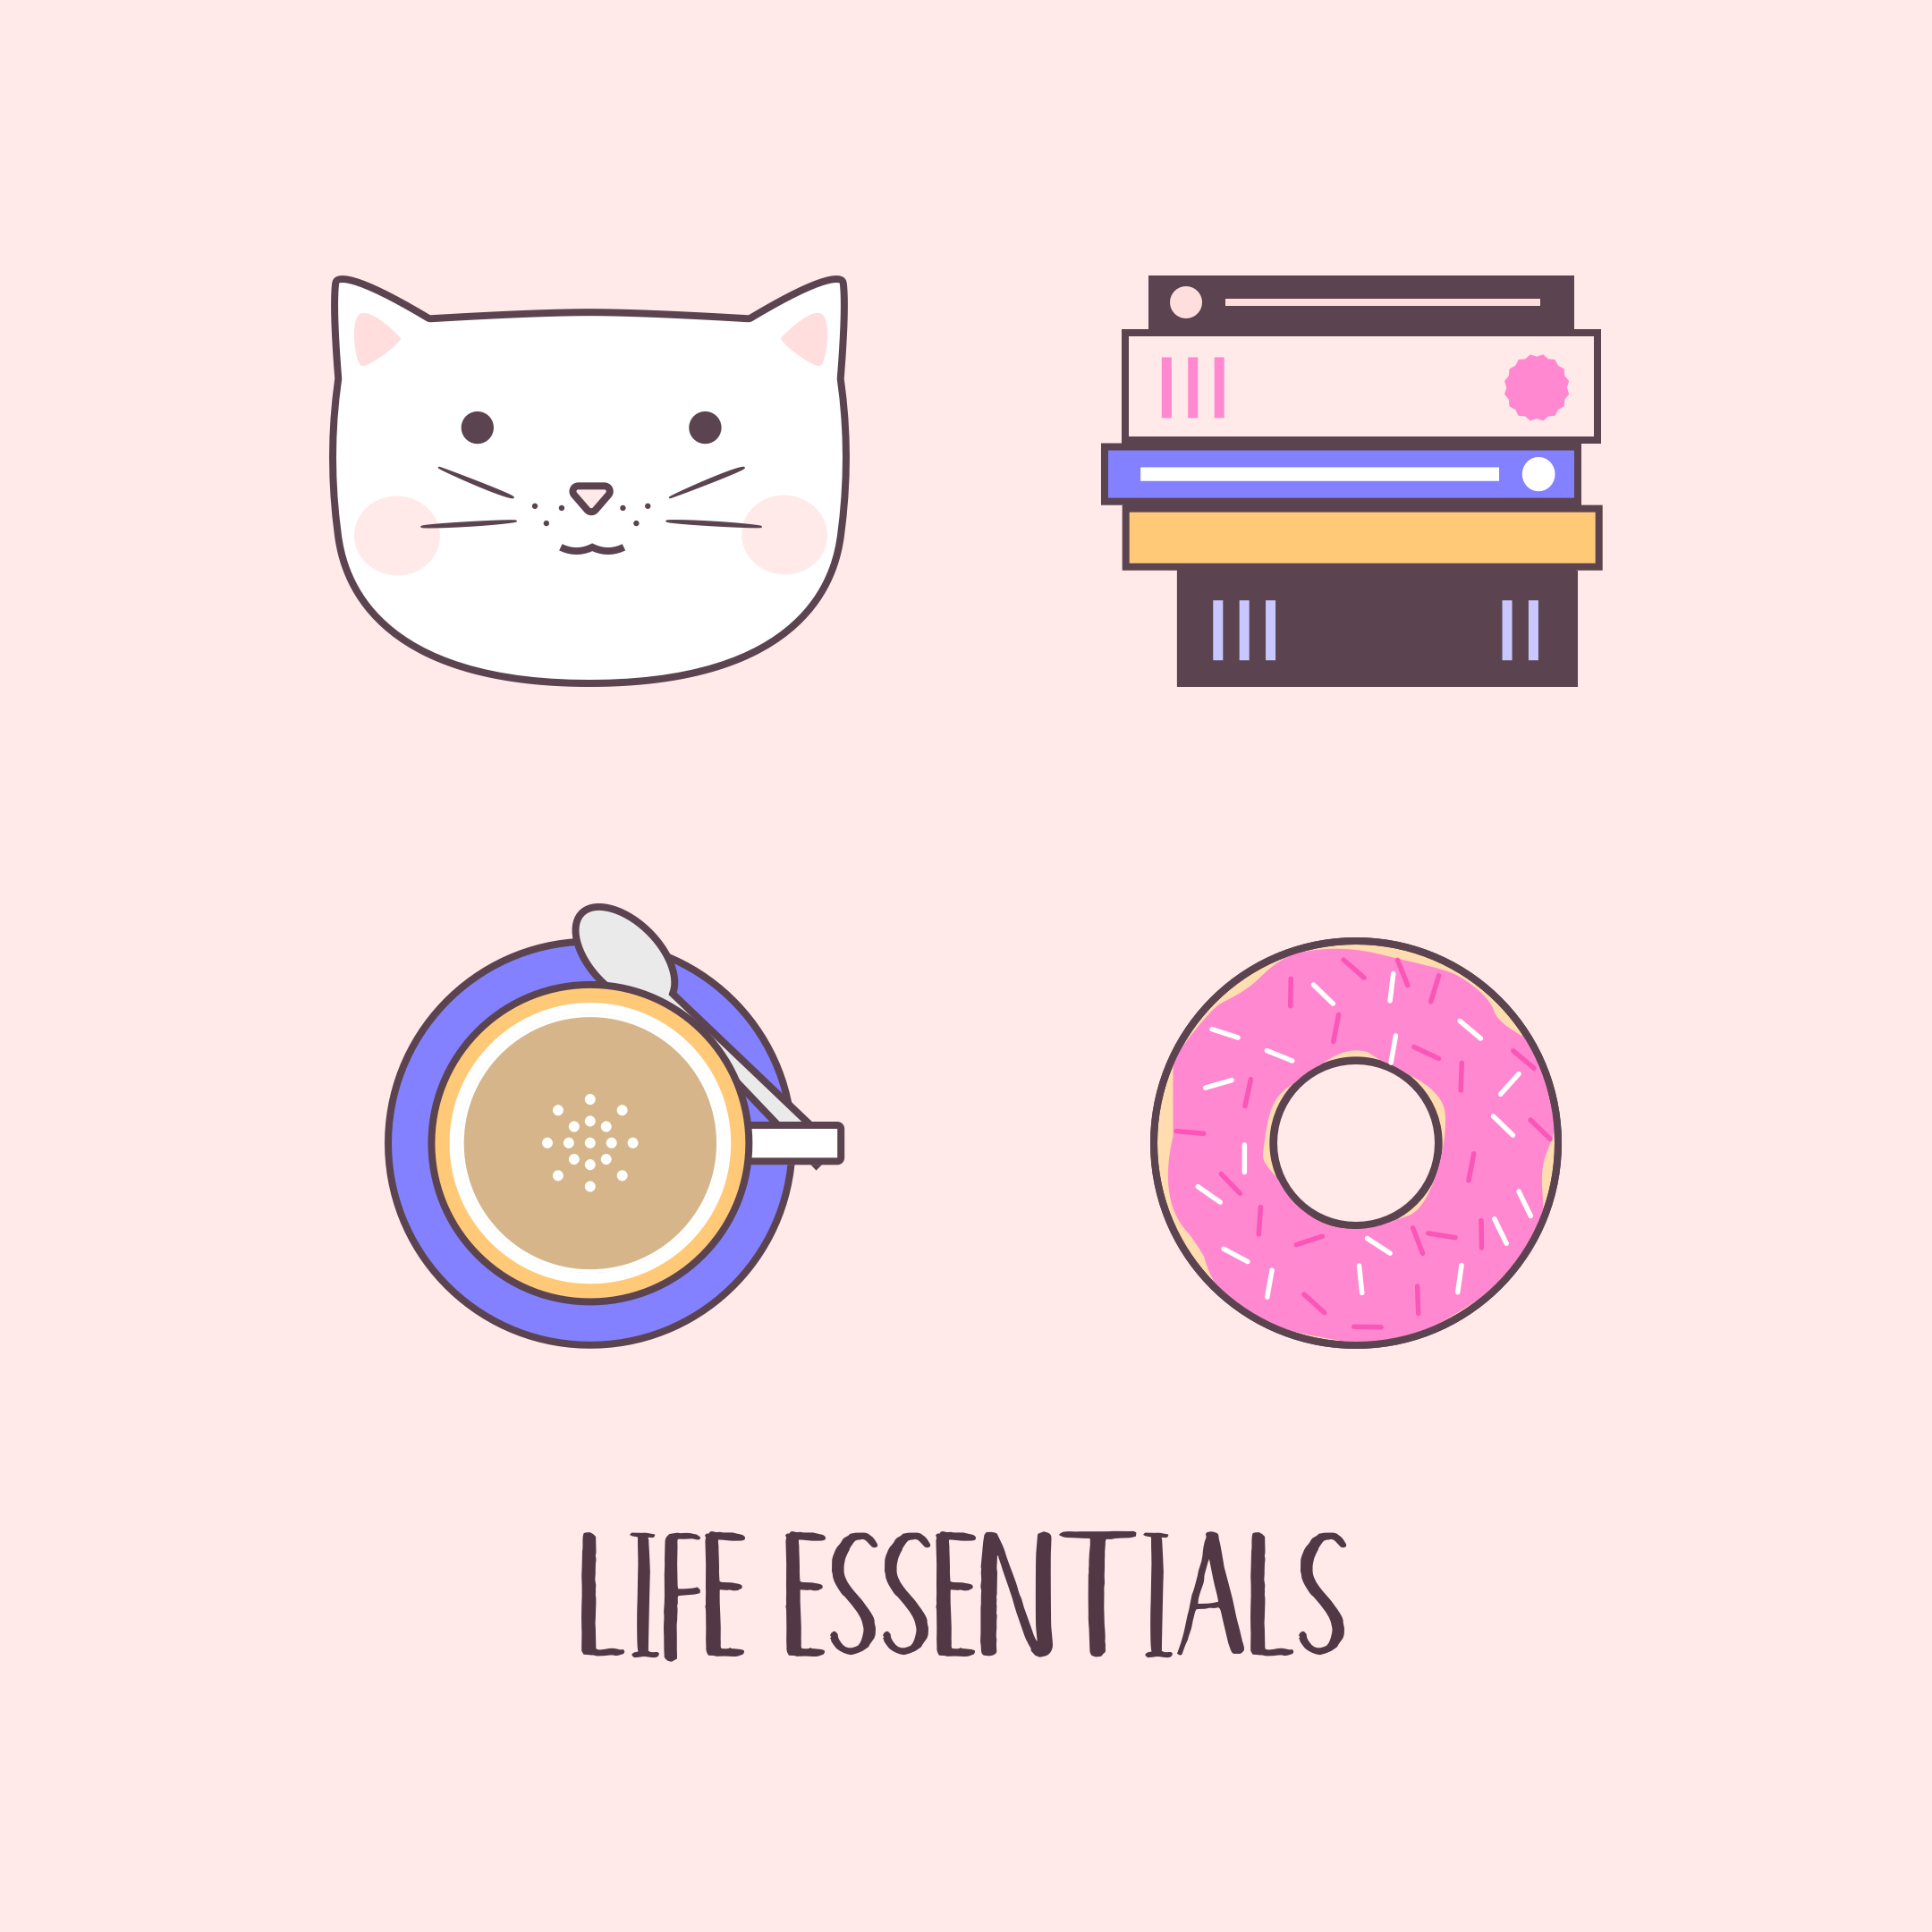 Cats Books Coffee Donuts - Life Essentials